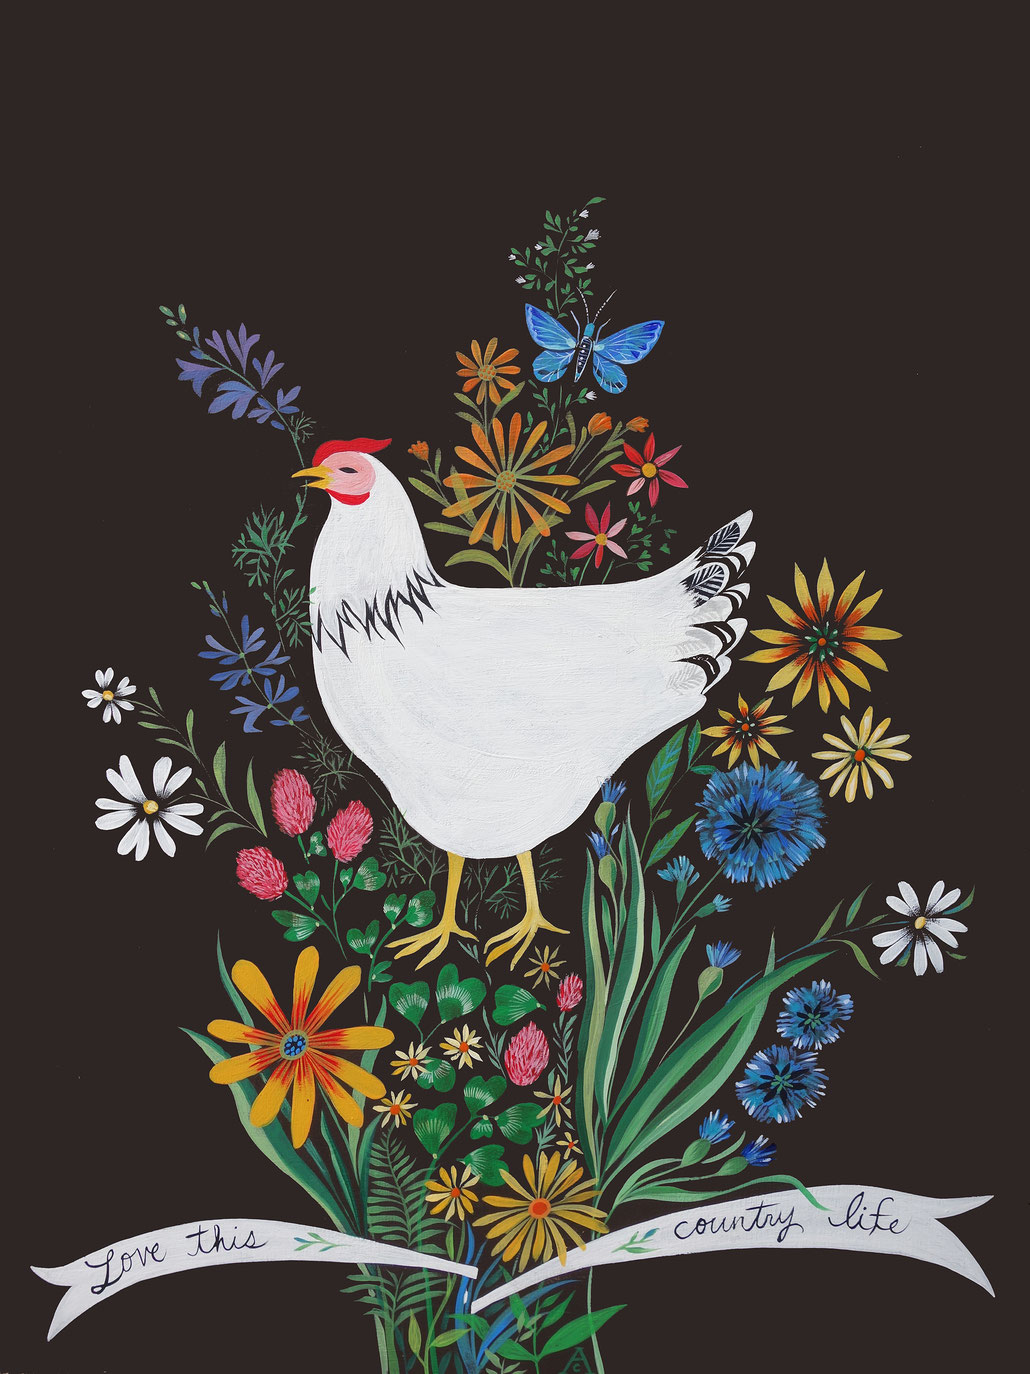 White Hen and Bouquet of Flowers 18 x 24 original Folk Art painting by Ande Cook